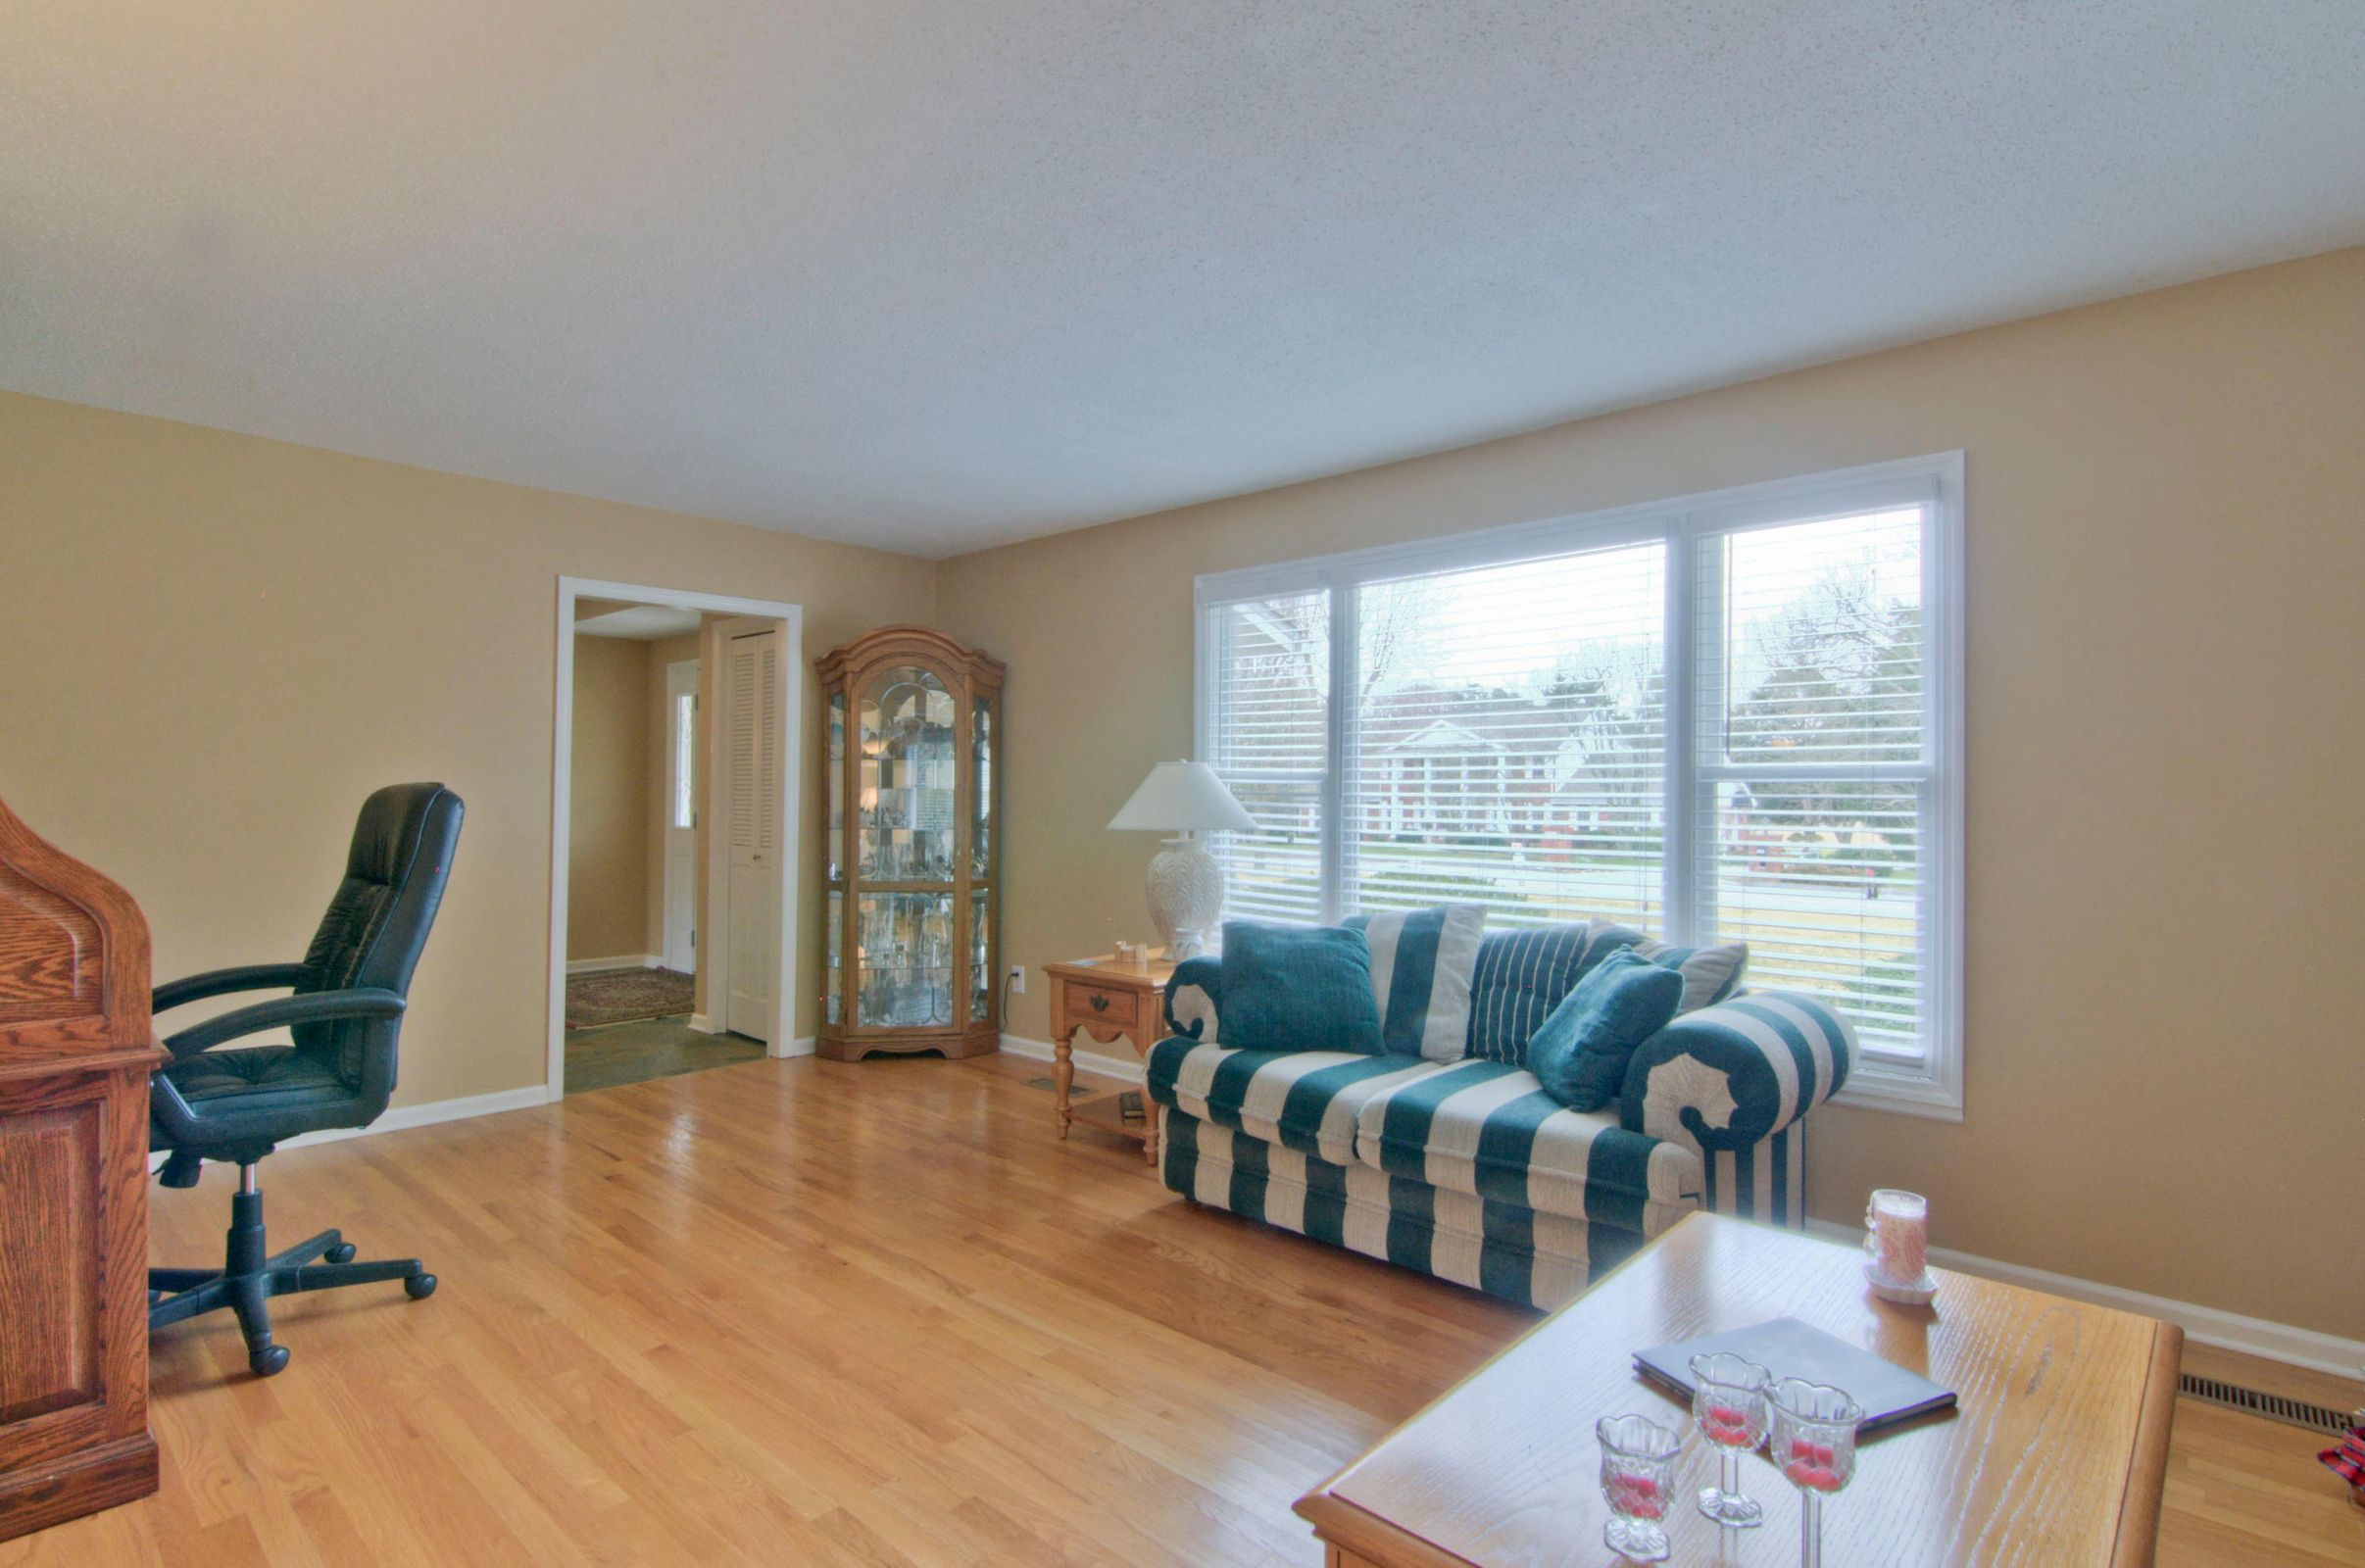 LIVING ROOM-SPACIOUS W GREAT WINDOWS